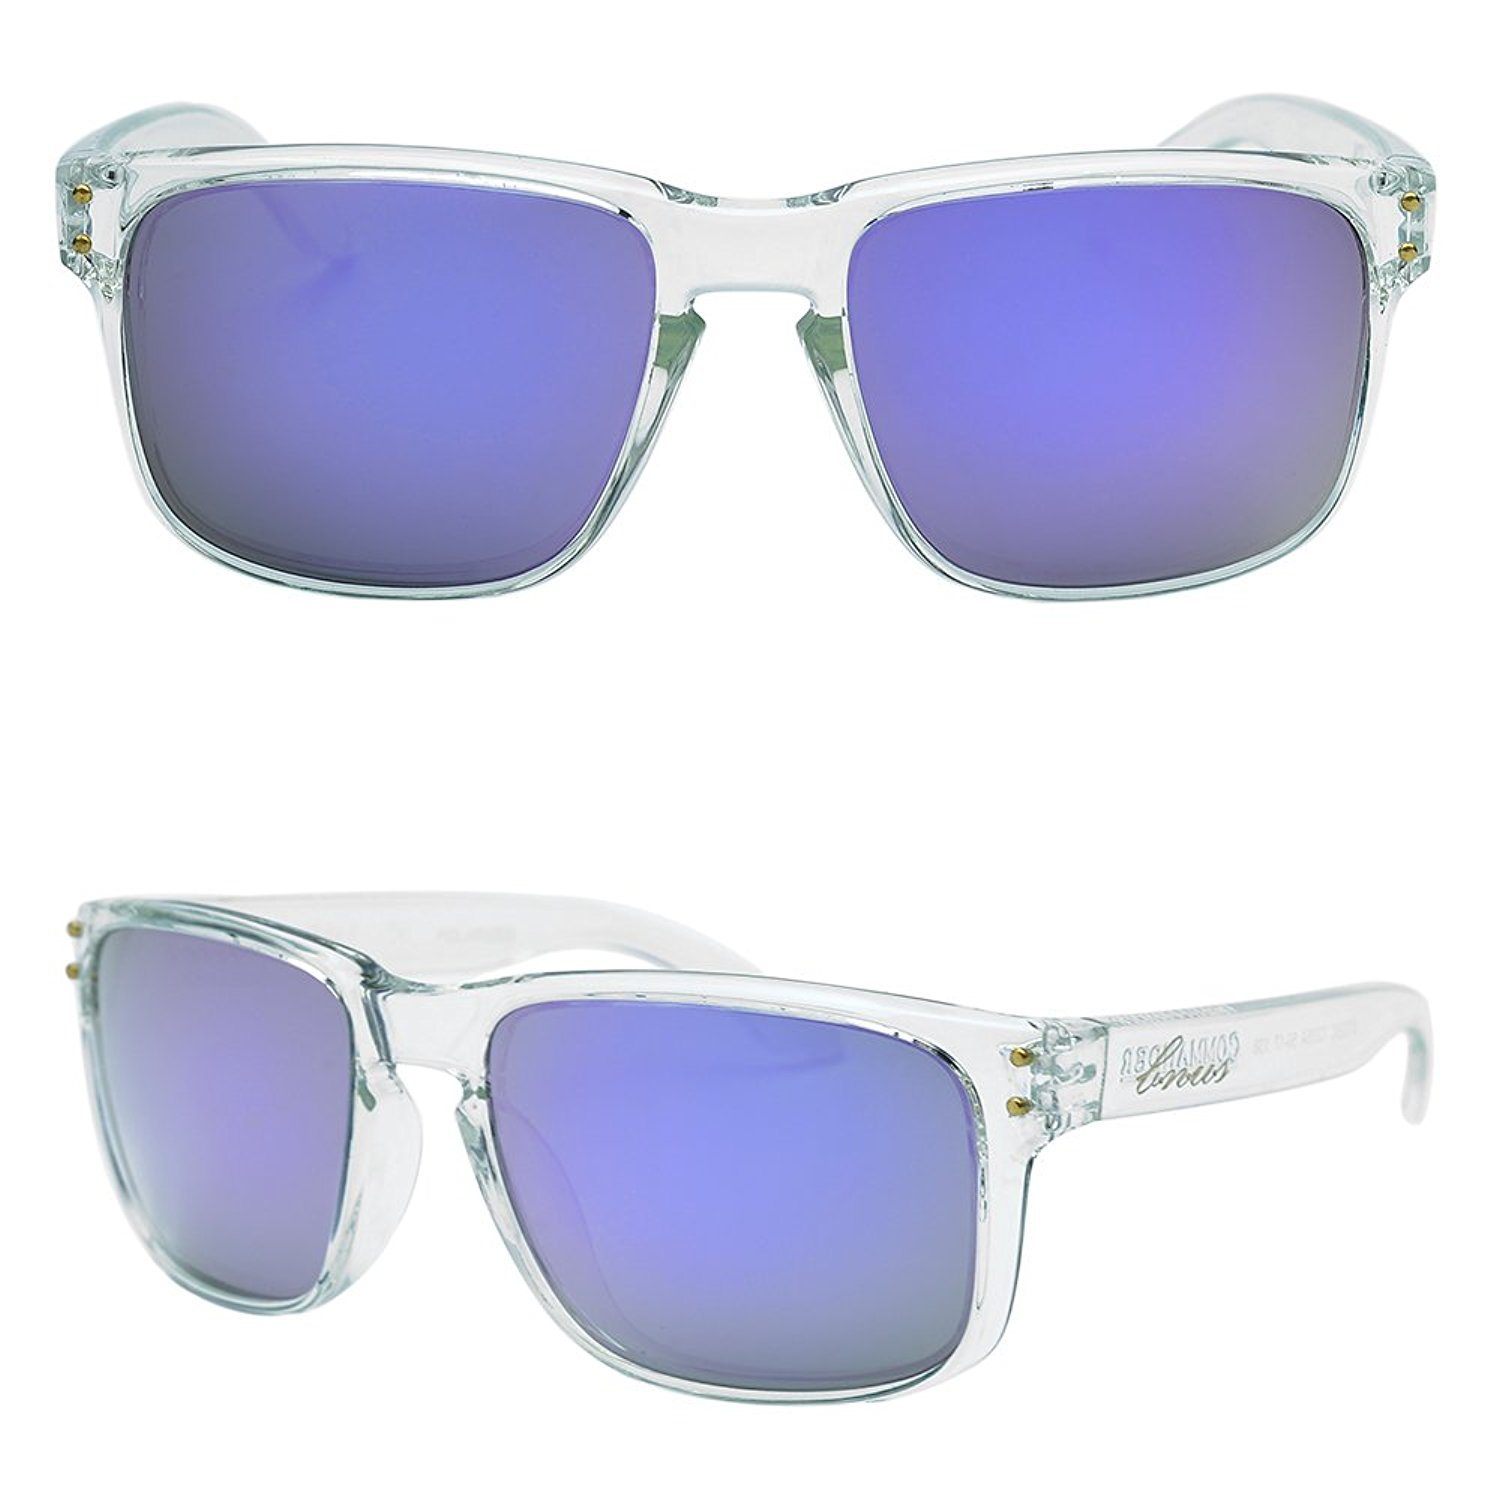 1c7606ae4b1 Get Quotations · BNUS Italy made Classic Sunglasses Corning Real Glass Lens  w. Polarized Option (Frame